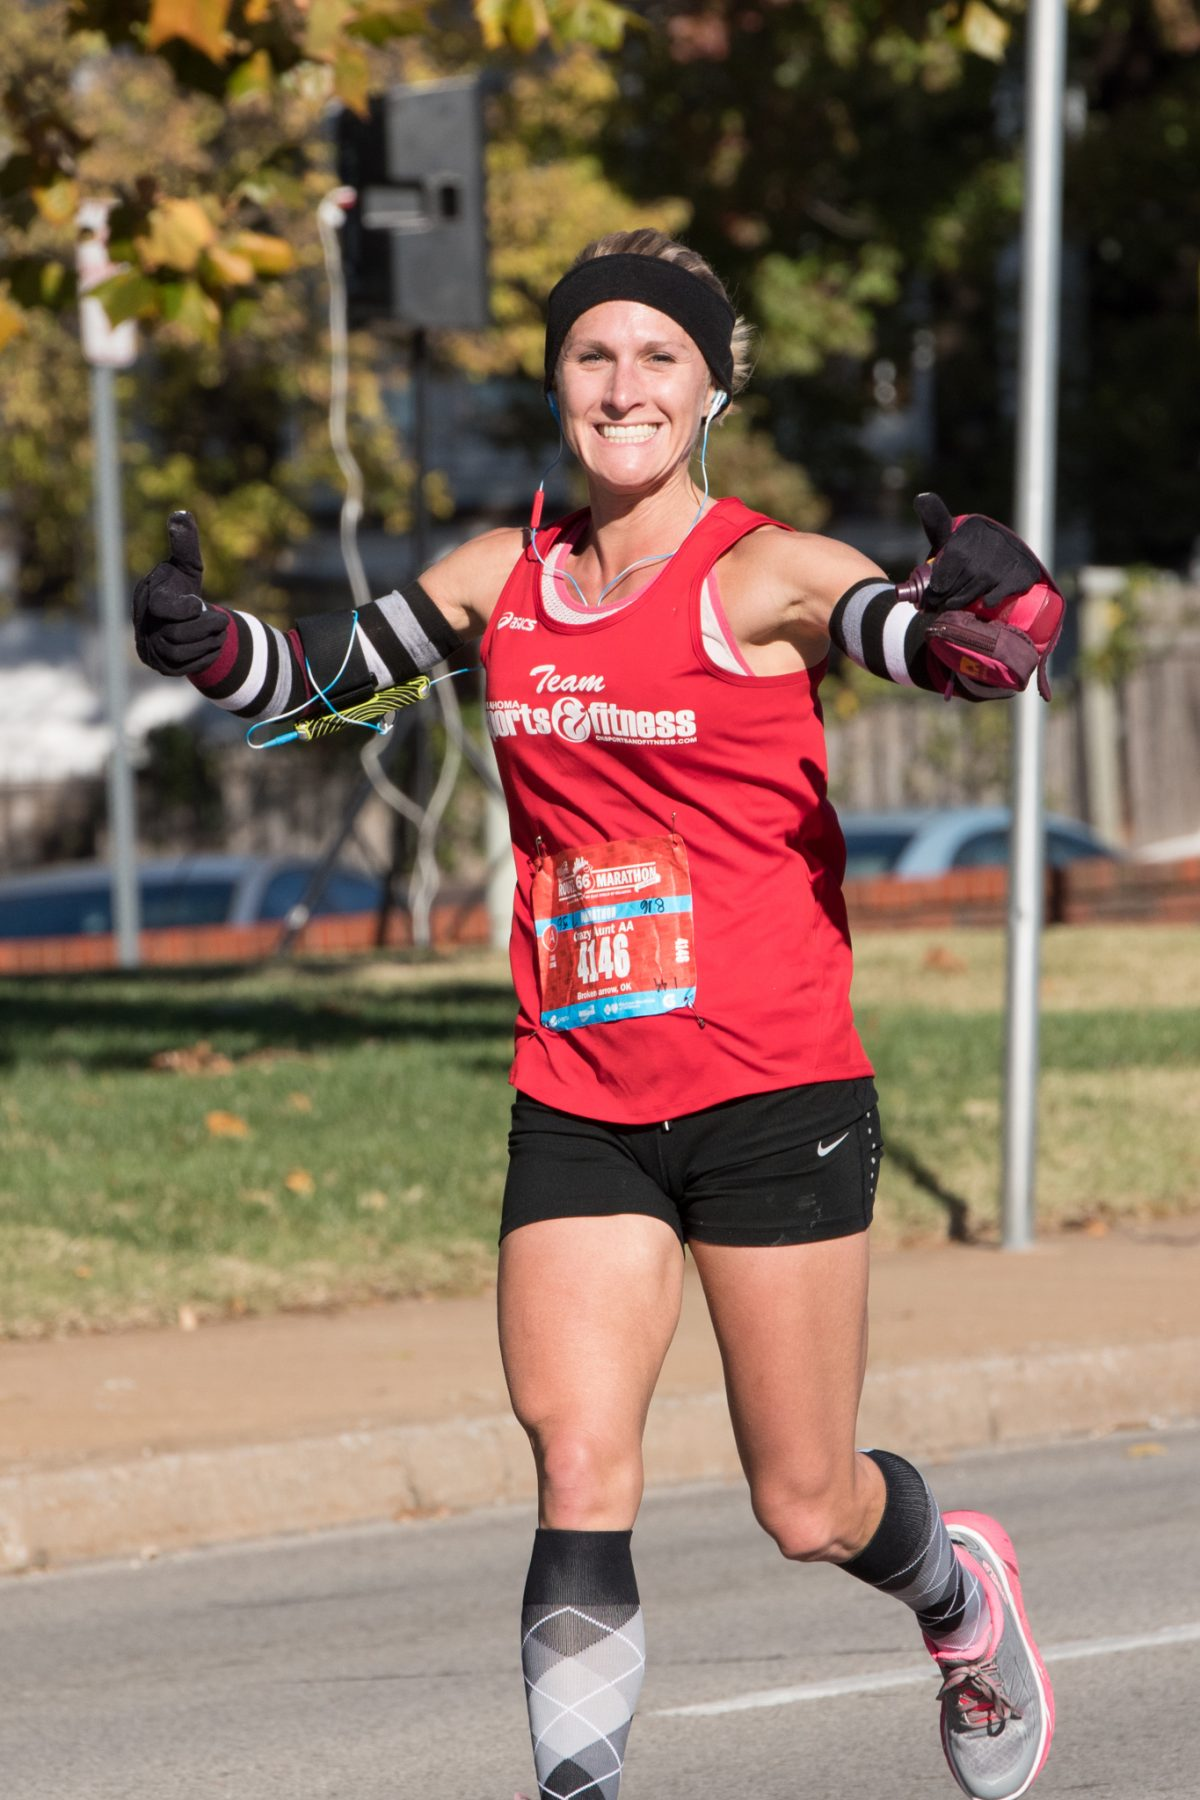 2016 Williams Route 66 Marathon in Tulsa, OK